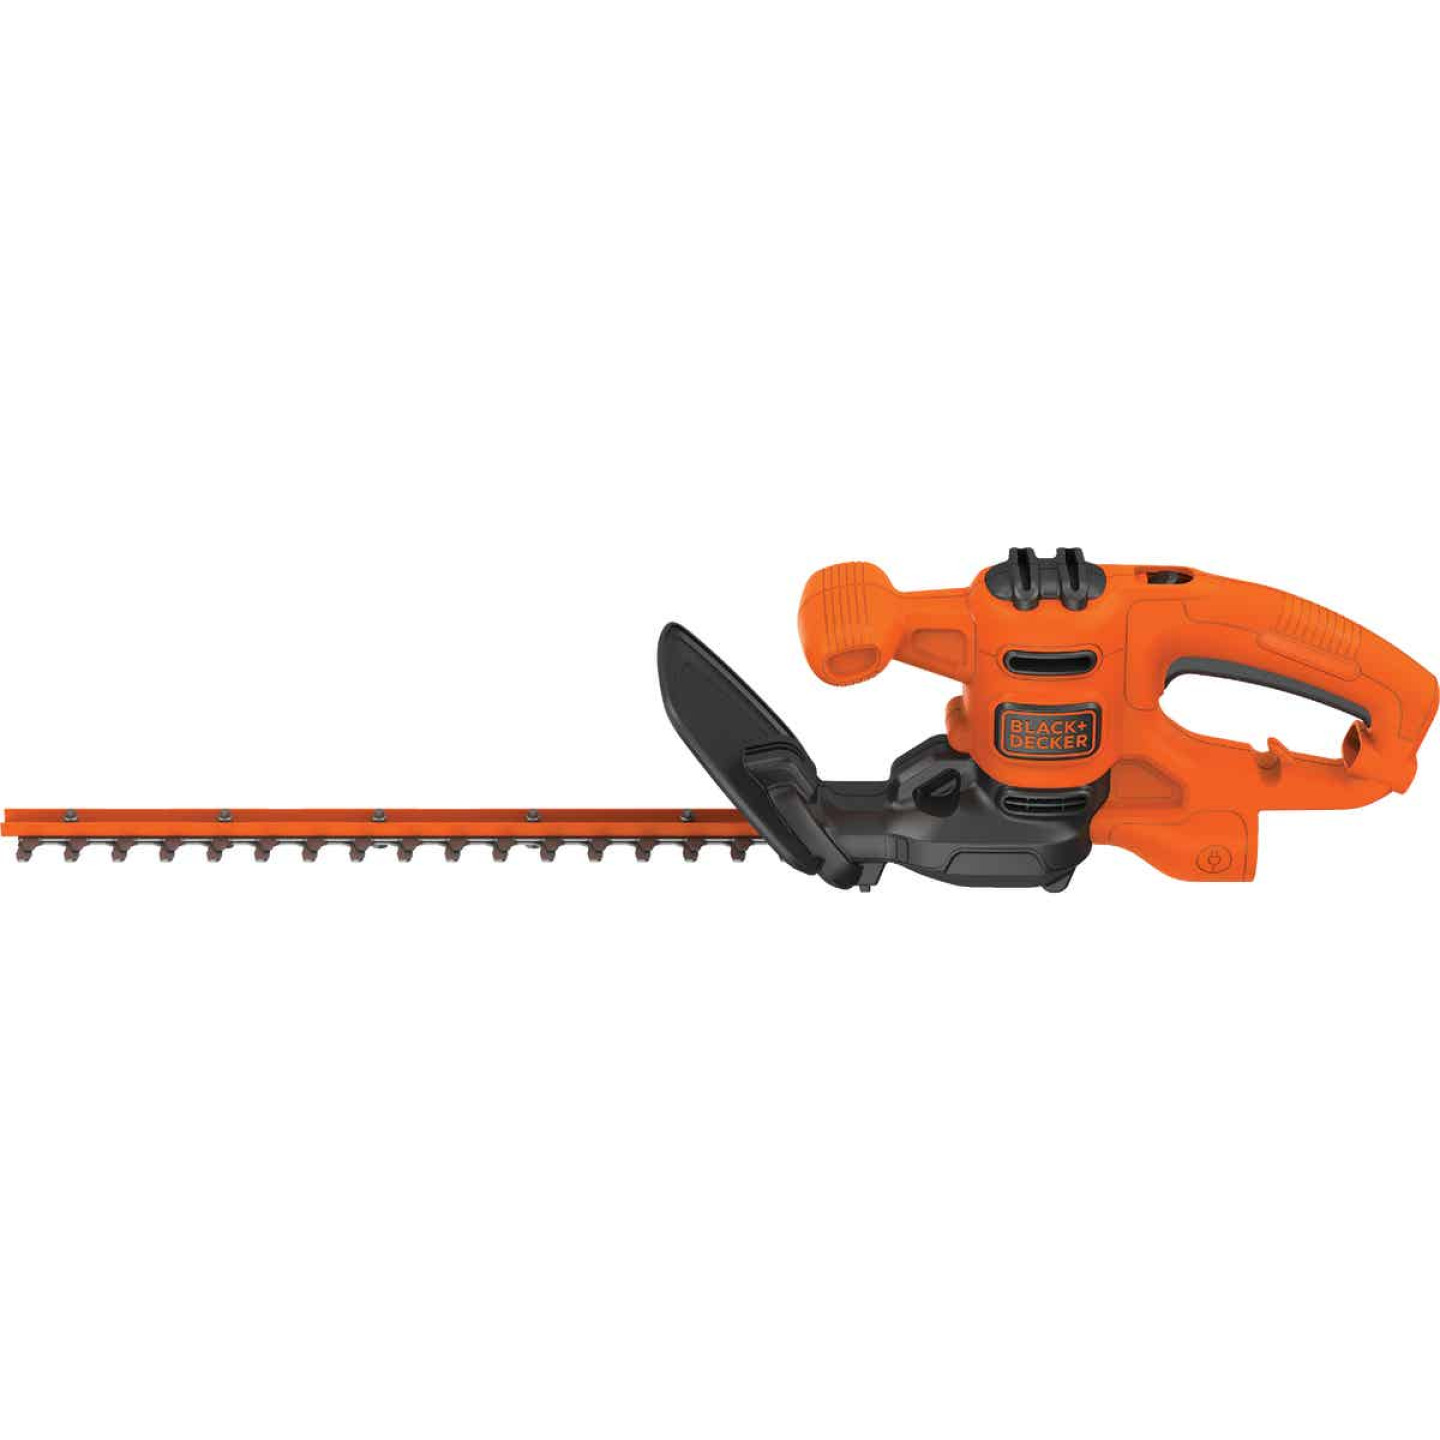 Black & Decker 16 In. 3A Corded Electric Hedge Trimmer Image 4